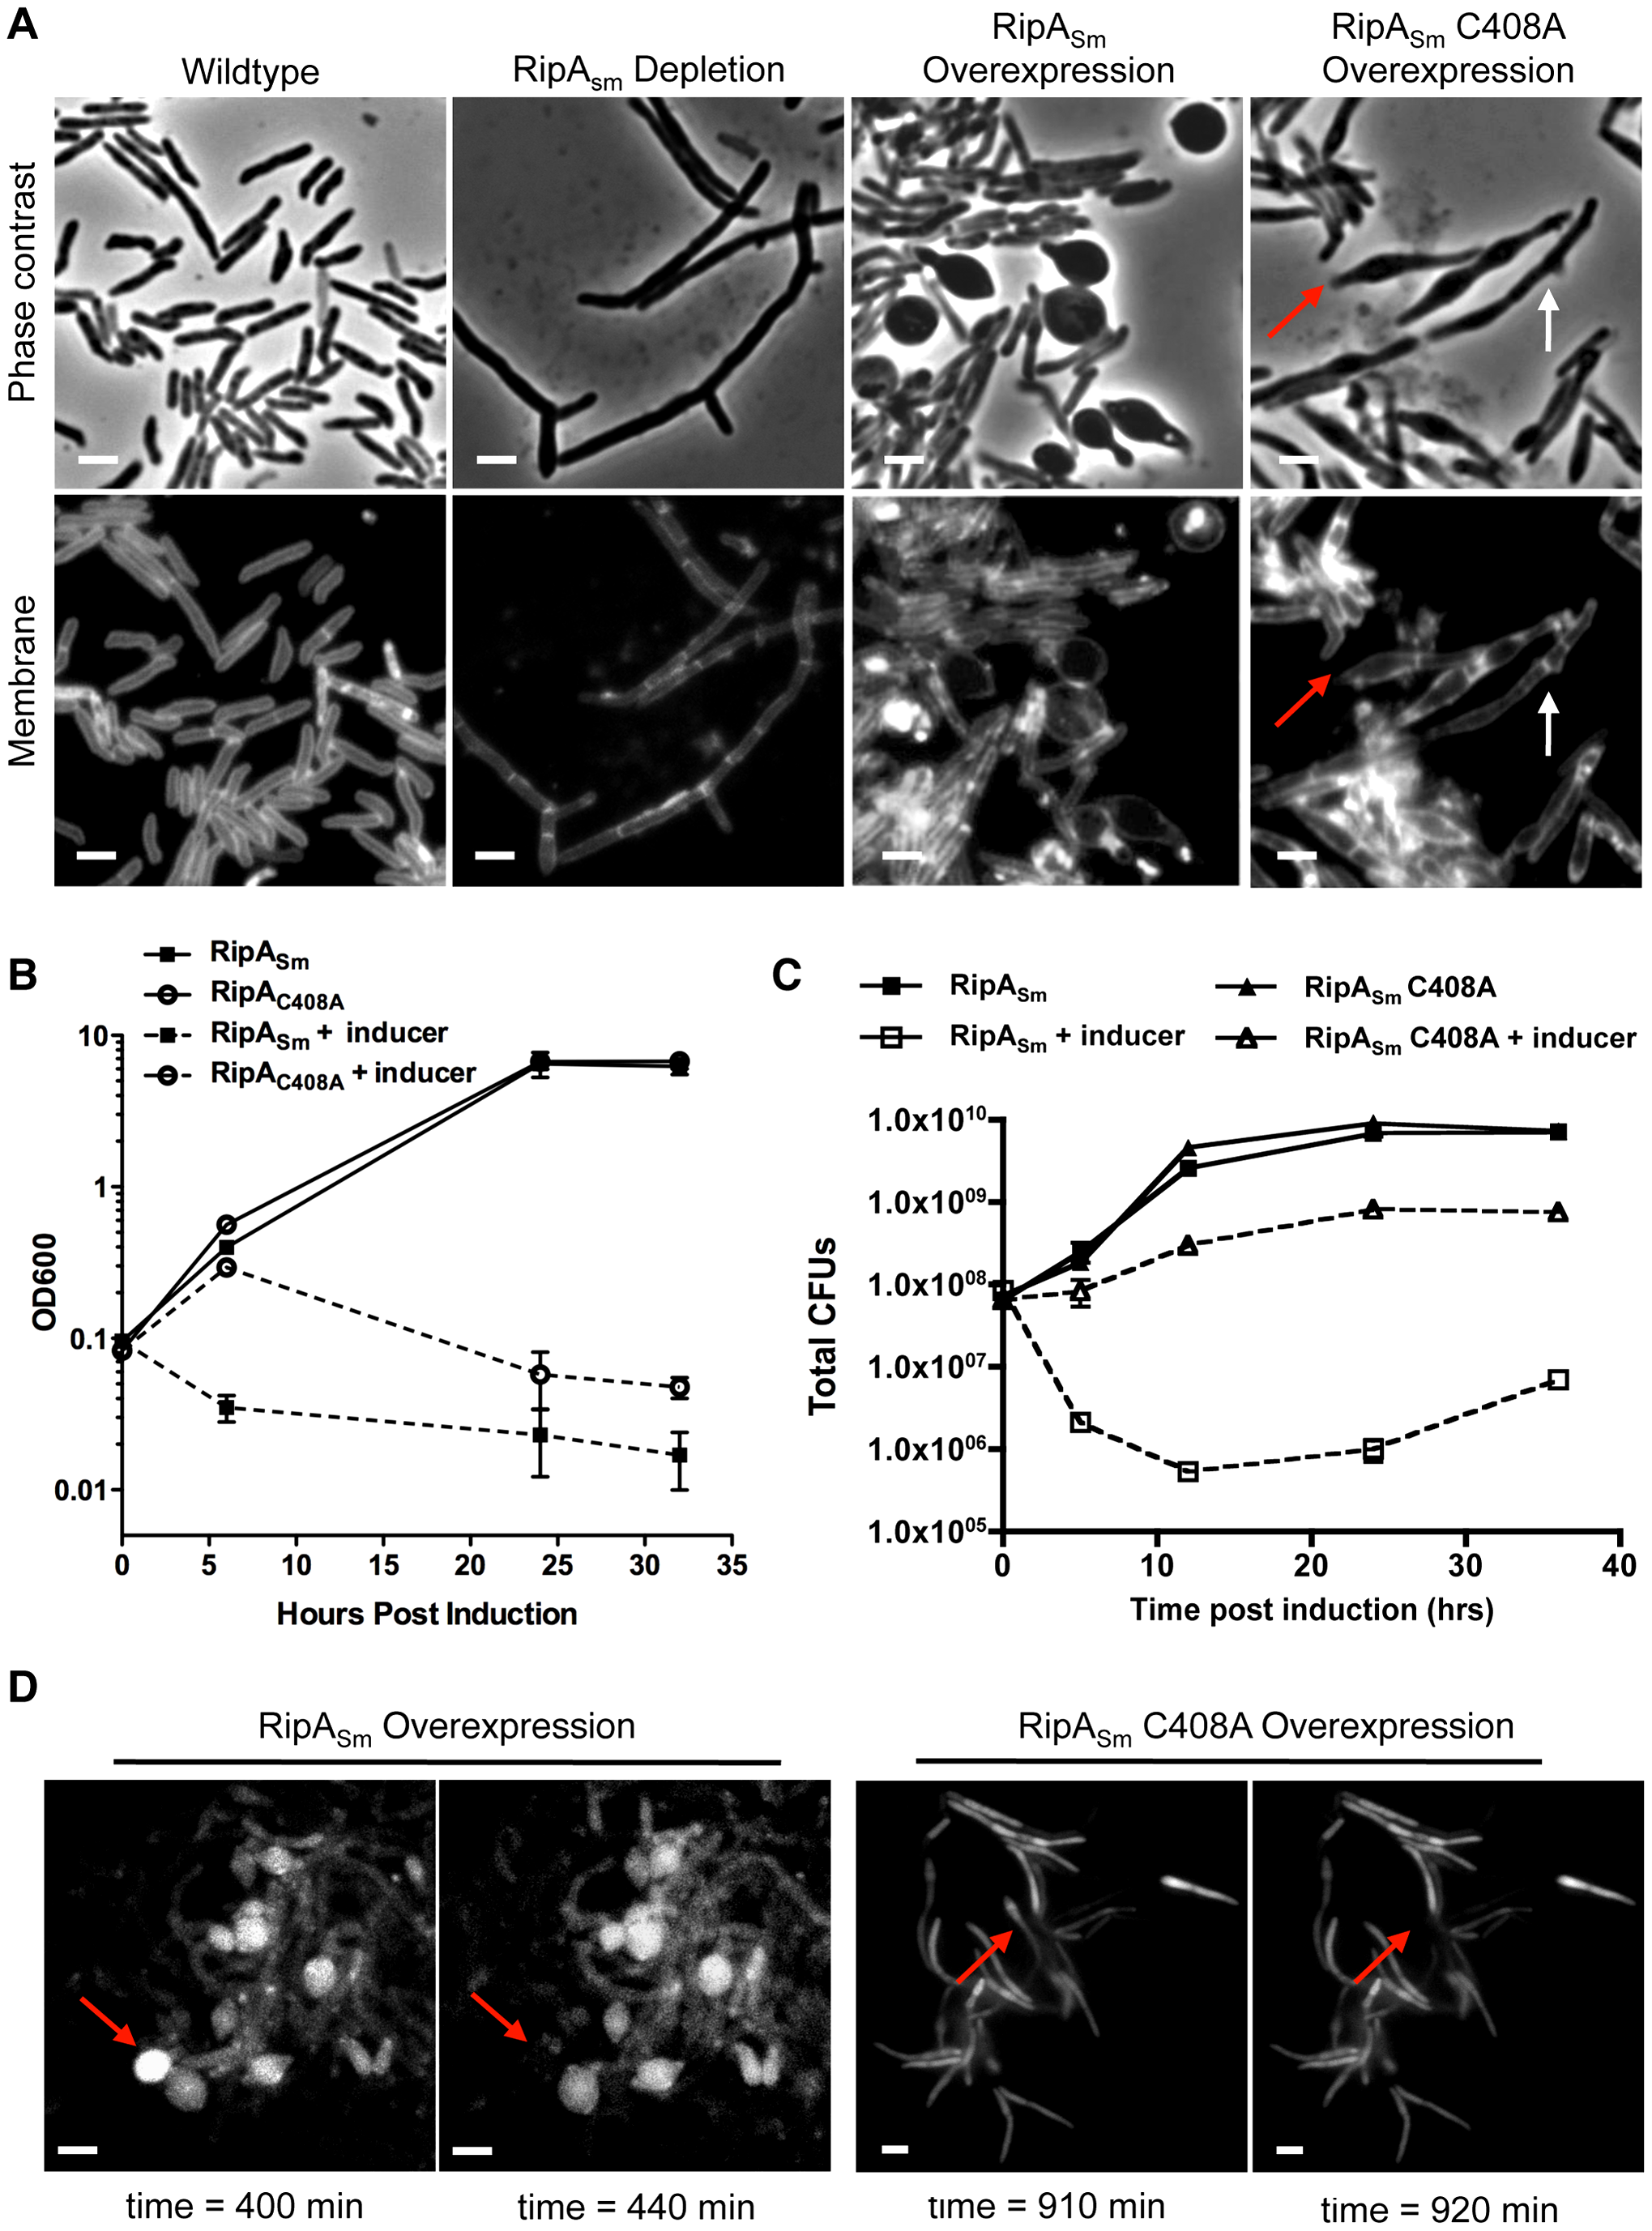 Dysregulation of RipA in <i>M. smegmatis</i> causes growth attenuation.